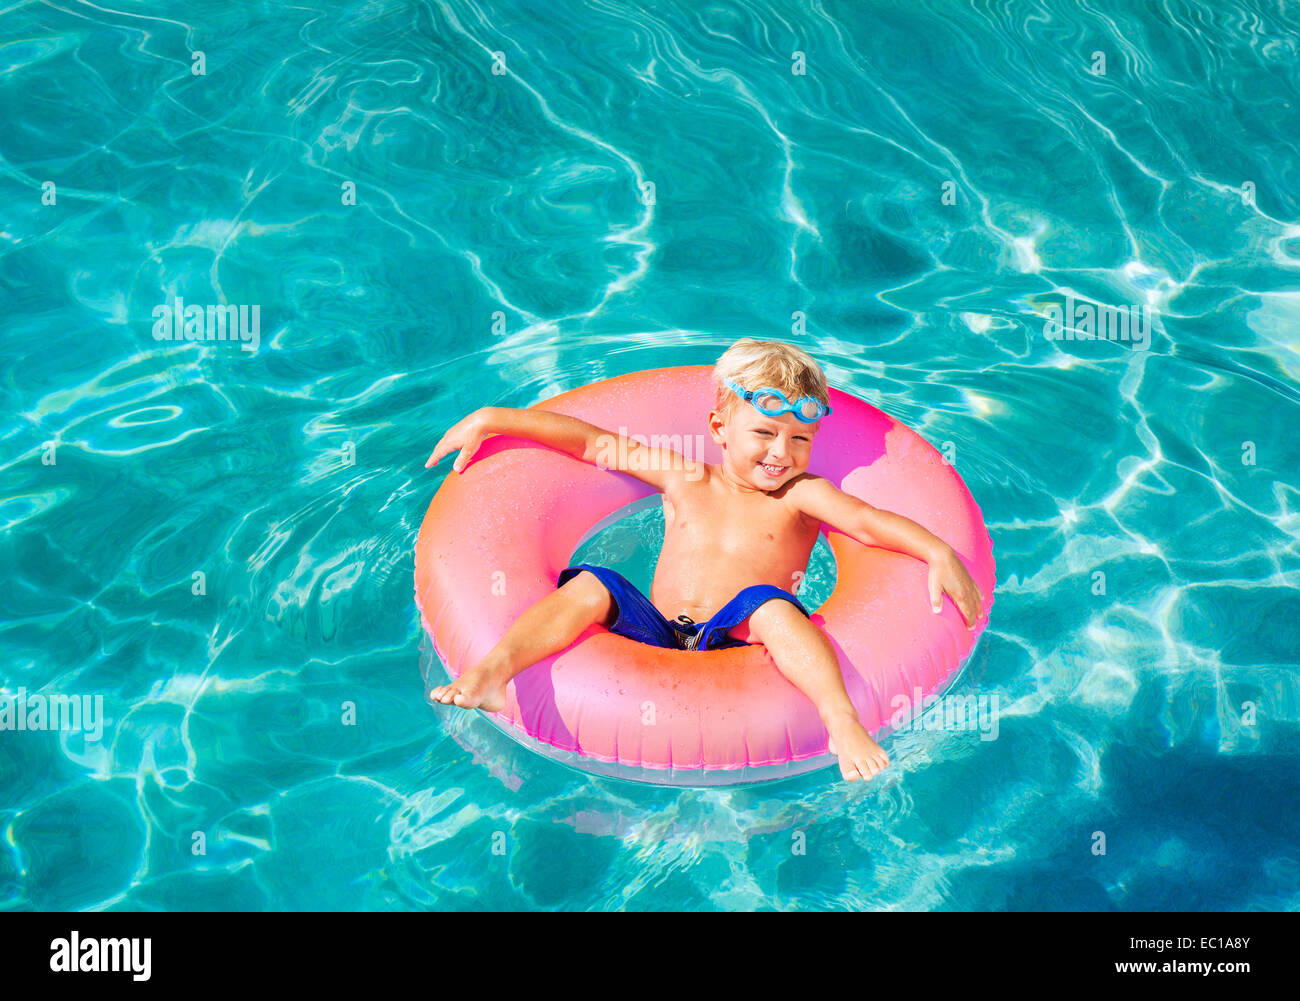 Young Kid Having Fun in the Swimming Pool On Inner Tube Raft. Summer Vacation Fun. - Stock Image